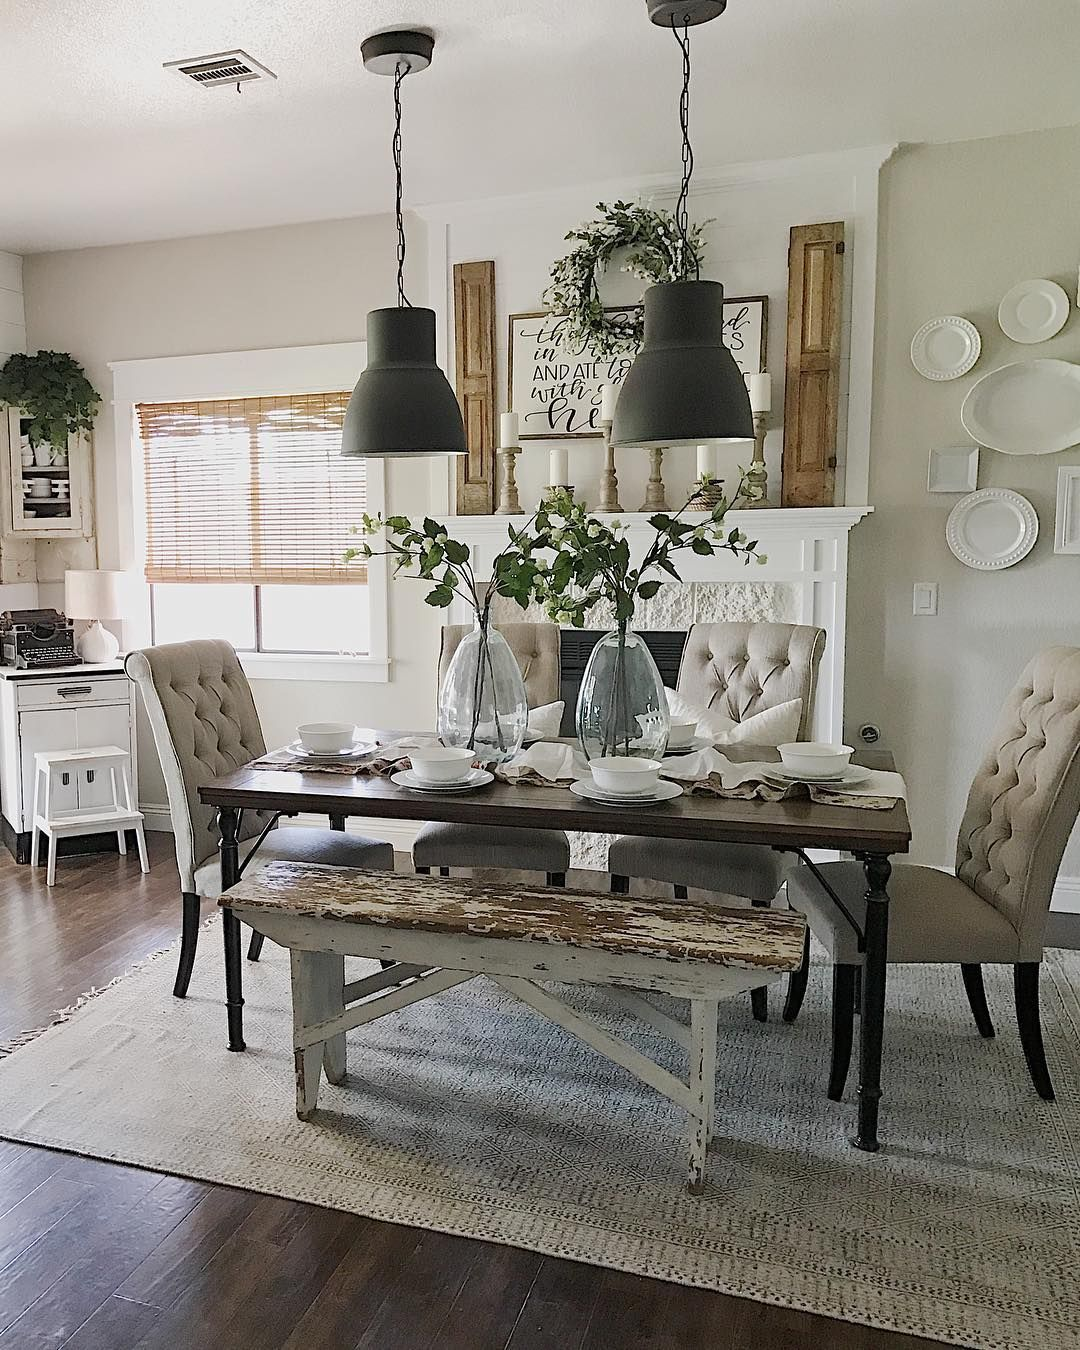 49 Modern Farmhouse Dining Room Decorating Ideas in 2020